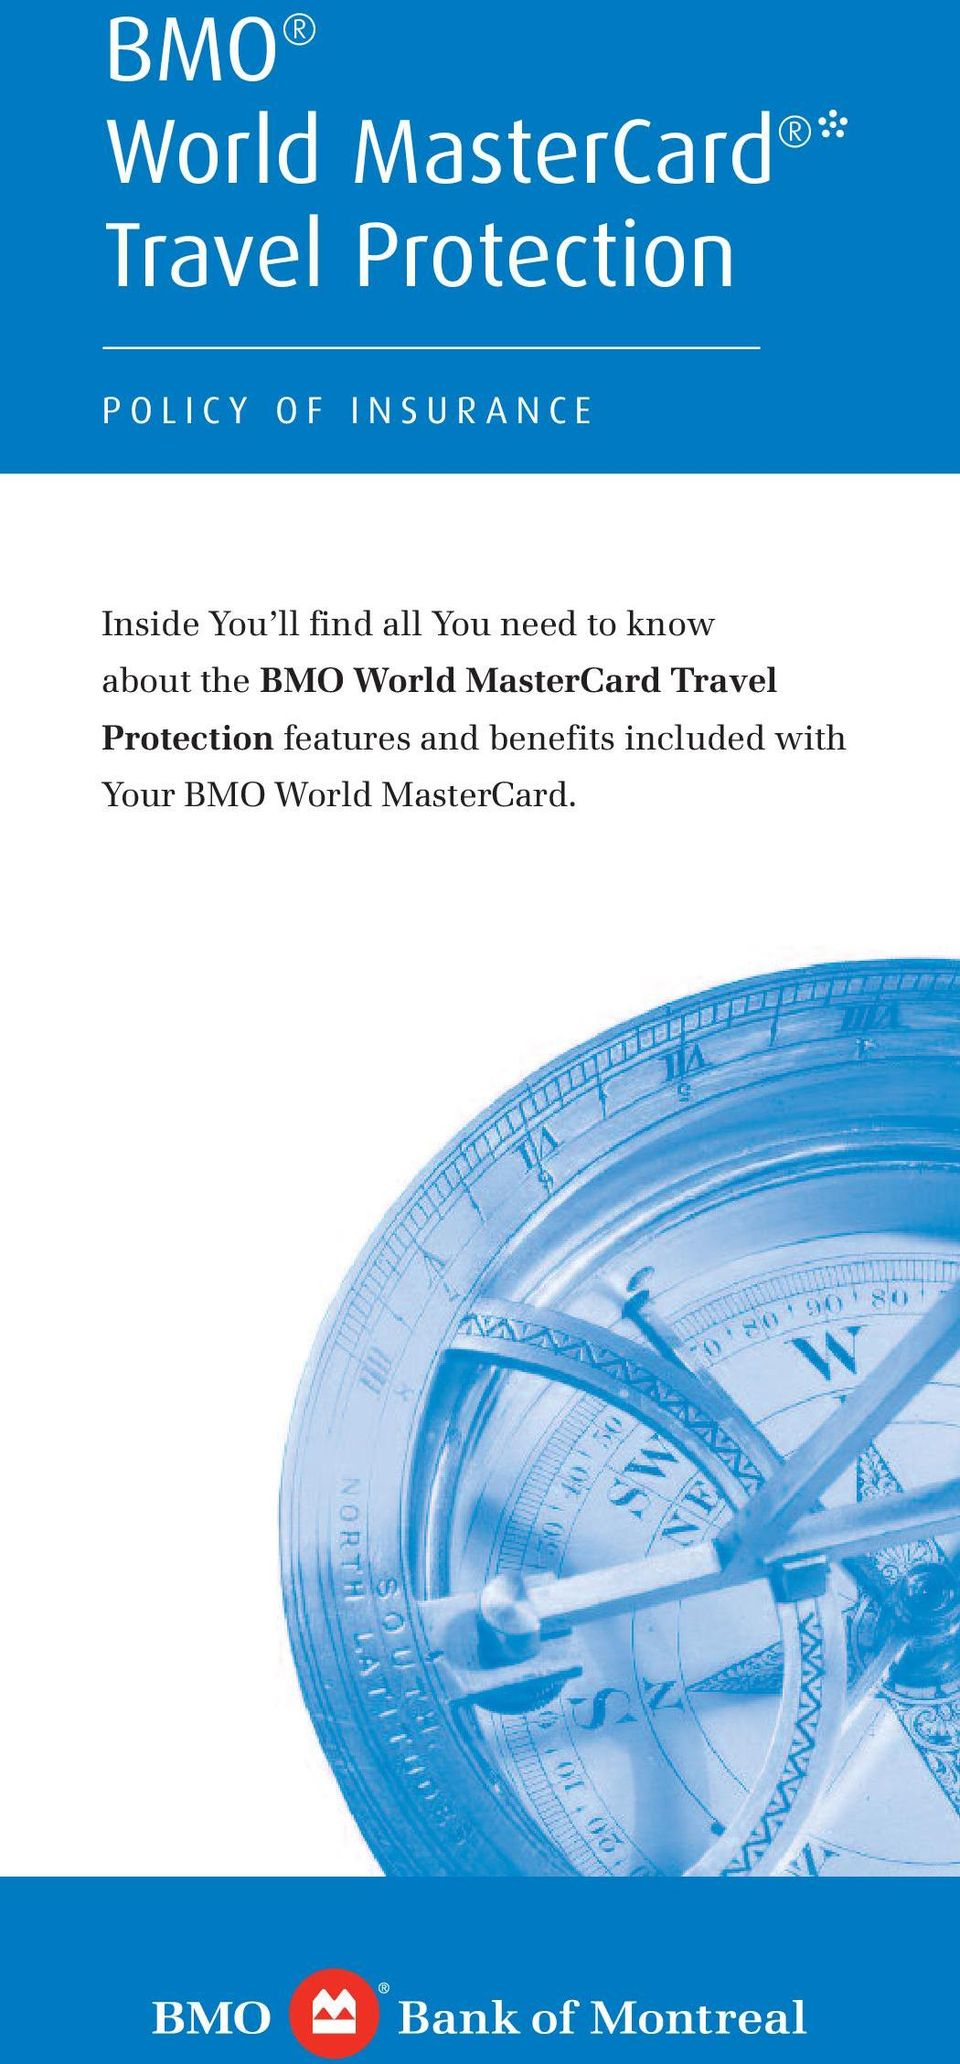 know about the BMO World MasterCard Travel Protection